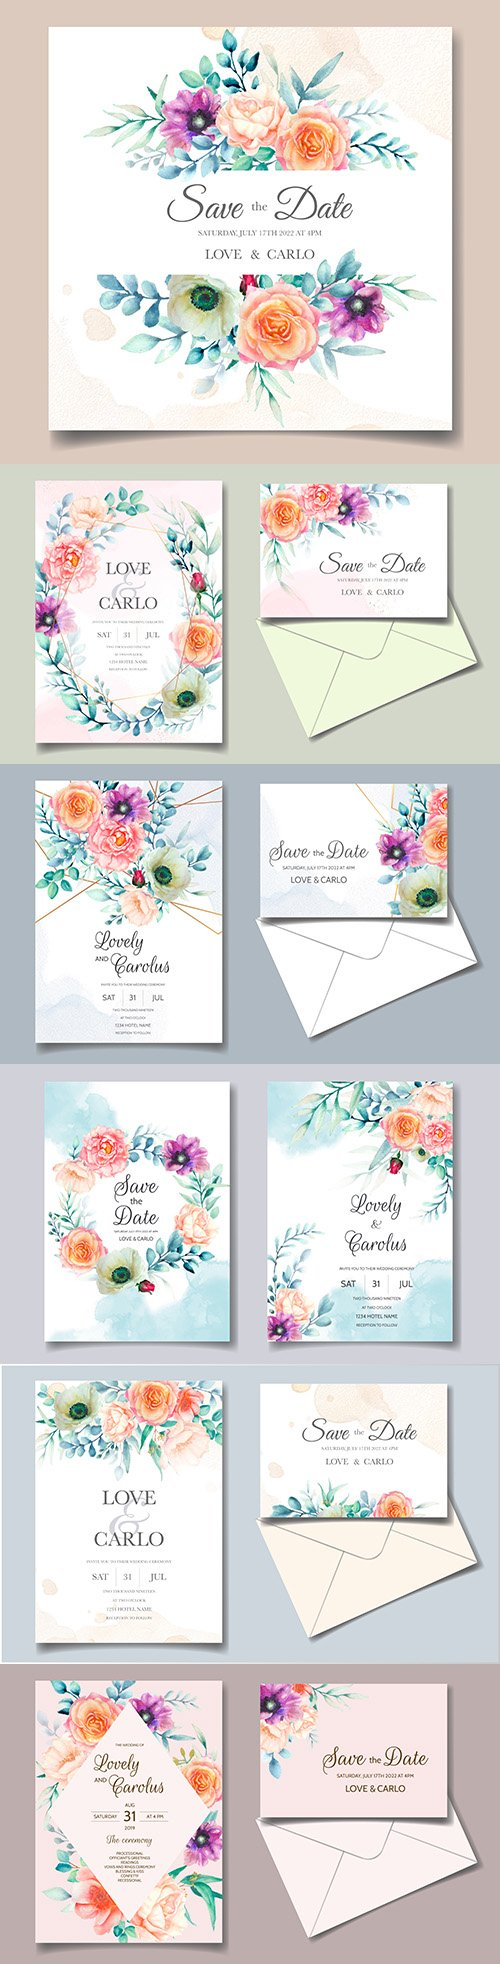 Wedding invitation template watercolor flower and green leaves 5